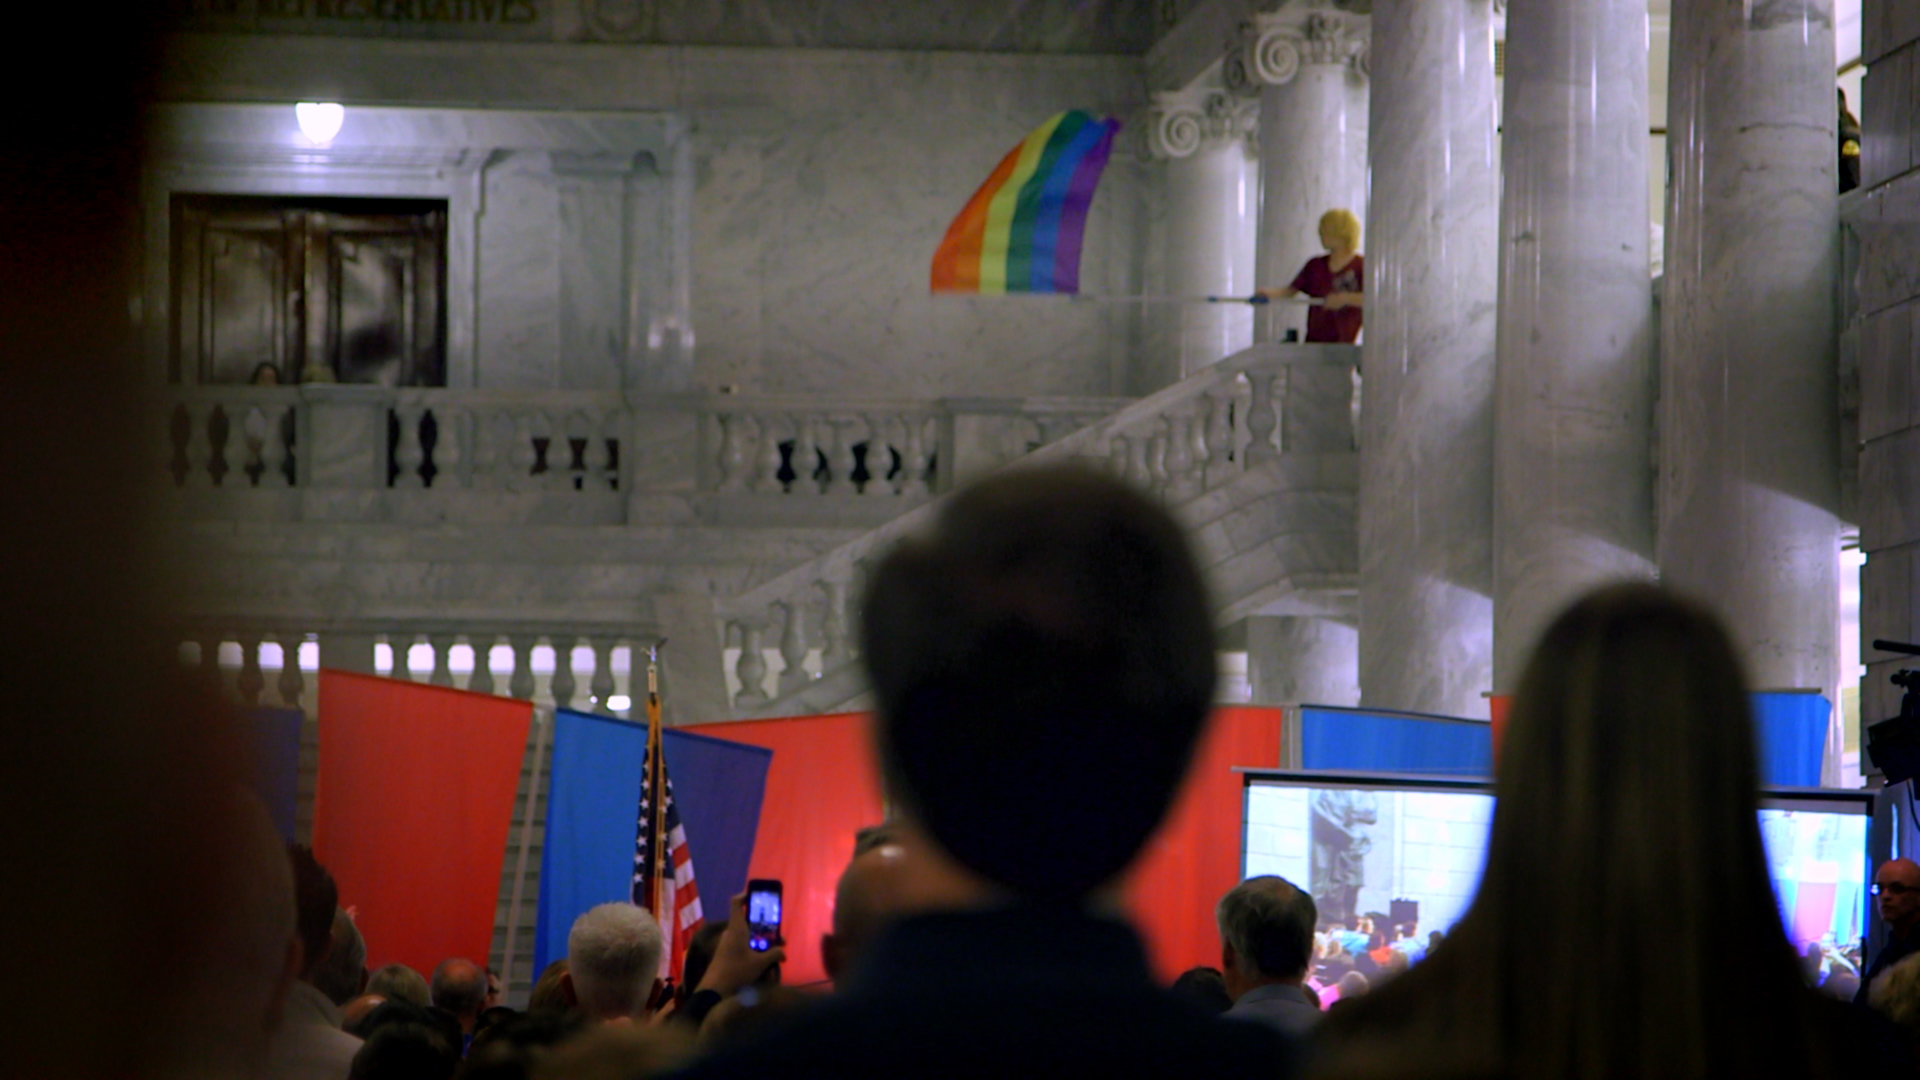 """A gay-rights protester flies a rainbow flag over a rally for """"traditional marriage,"""" in a scene from the documentary """"Church & State."""" (Photo courtesy Blue Fox Entertainment)"""